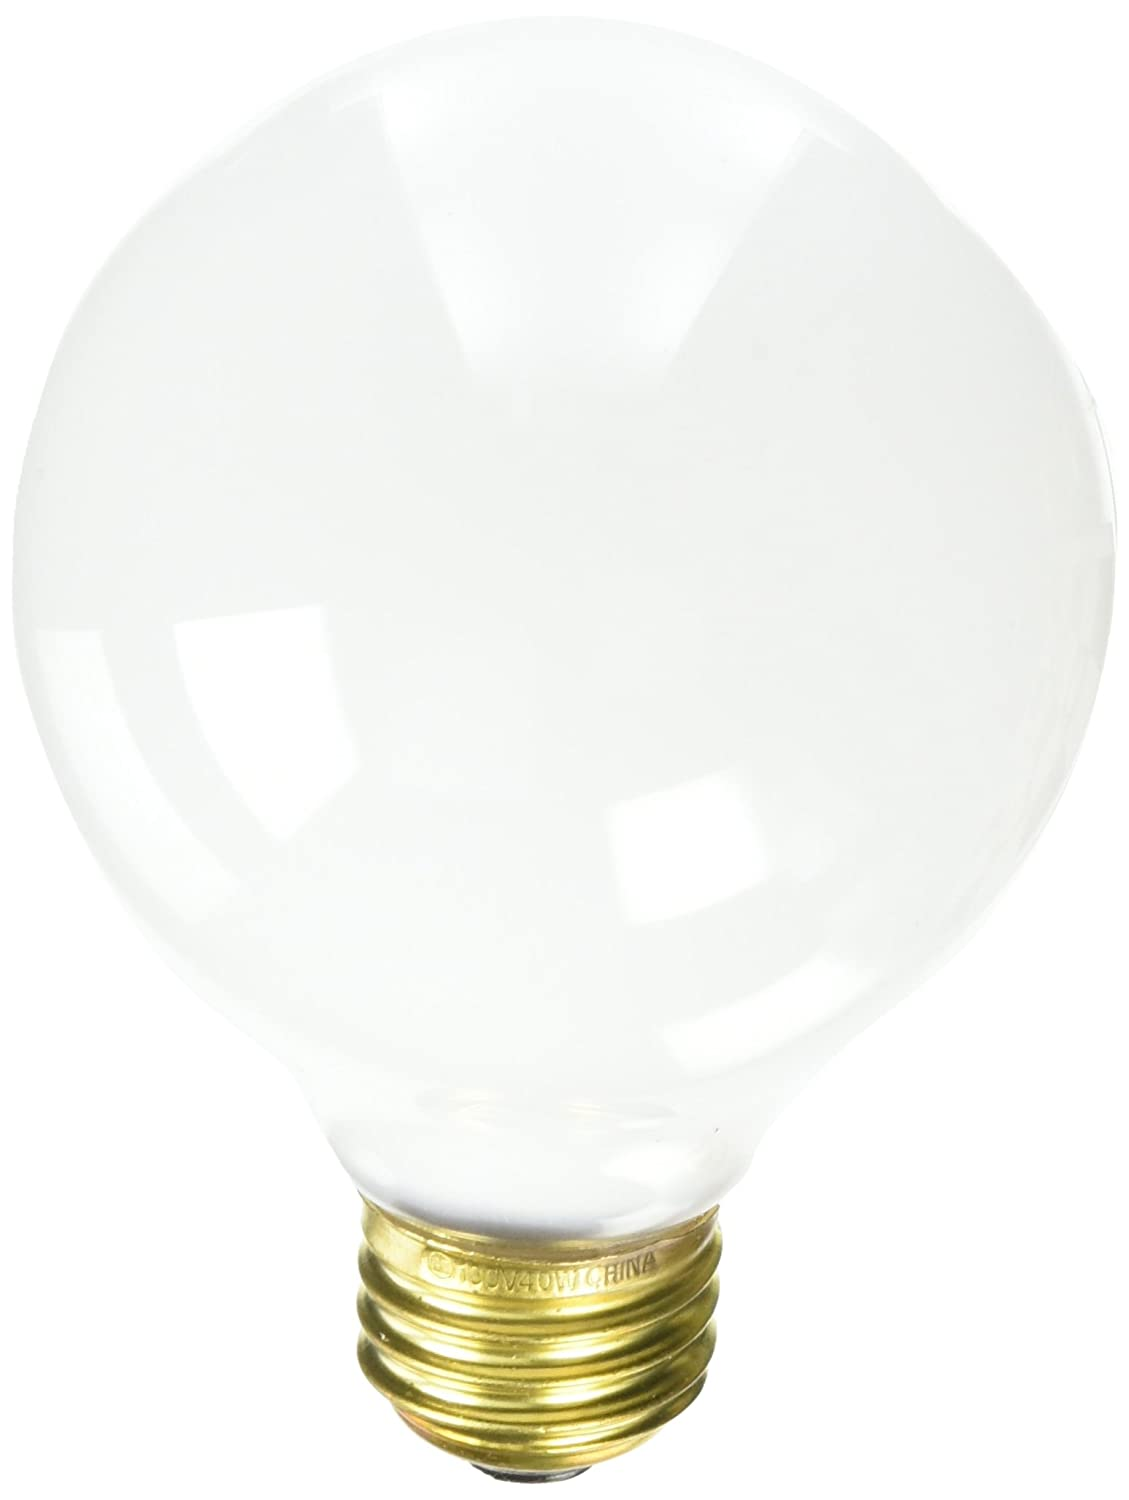 Bulbrite 861022 40 W Dimmable G25 Shape Incandescent Bulb E26 Base with Medium Screw 24 Pack White